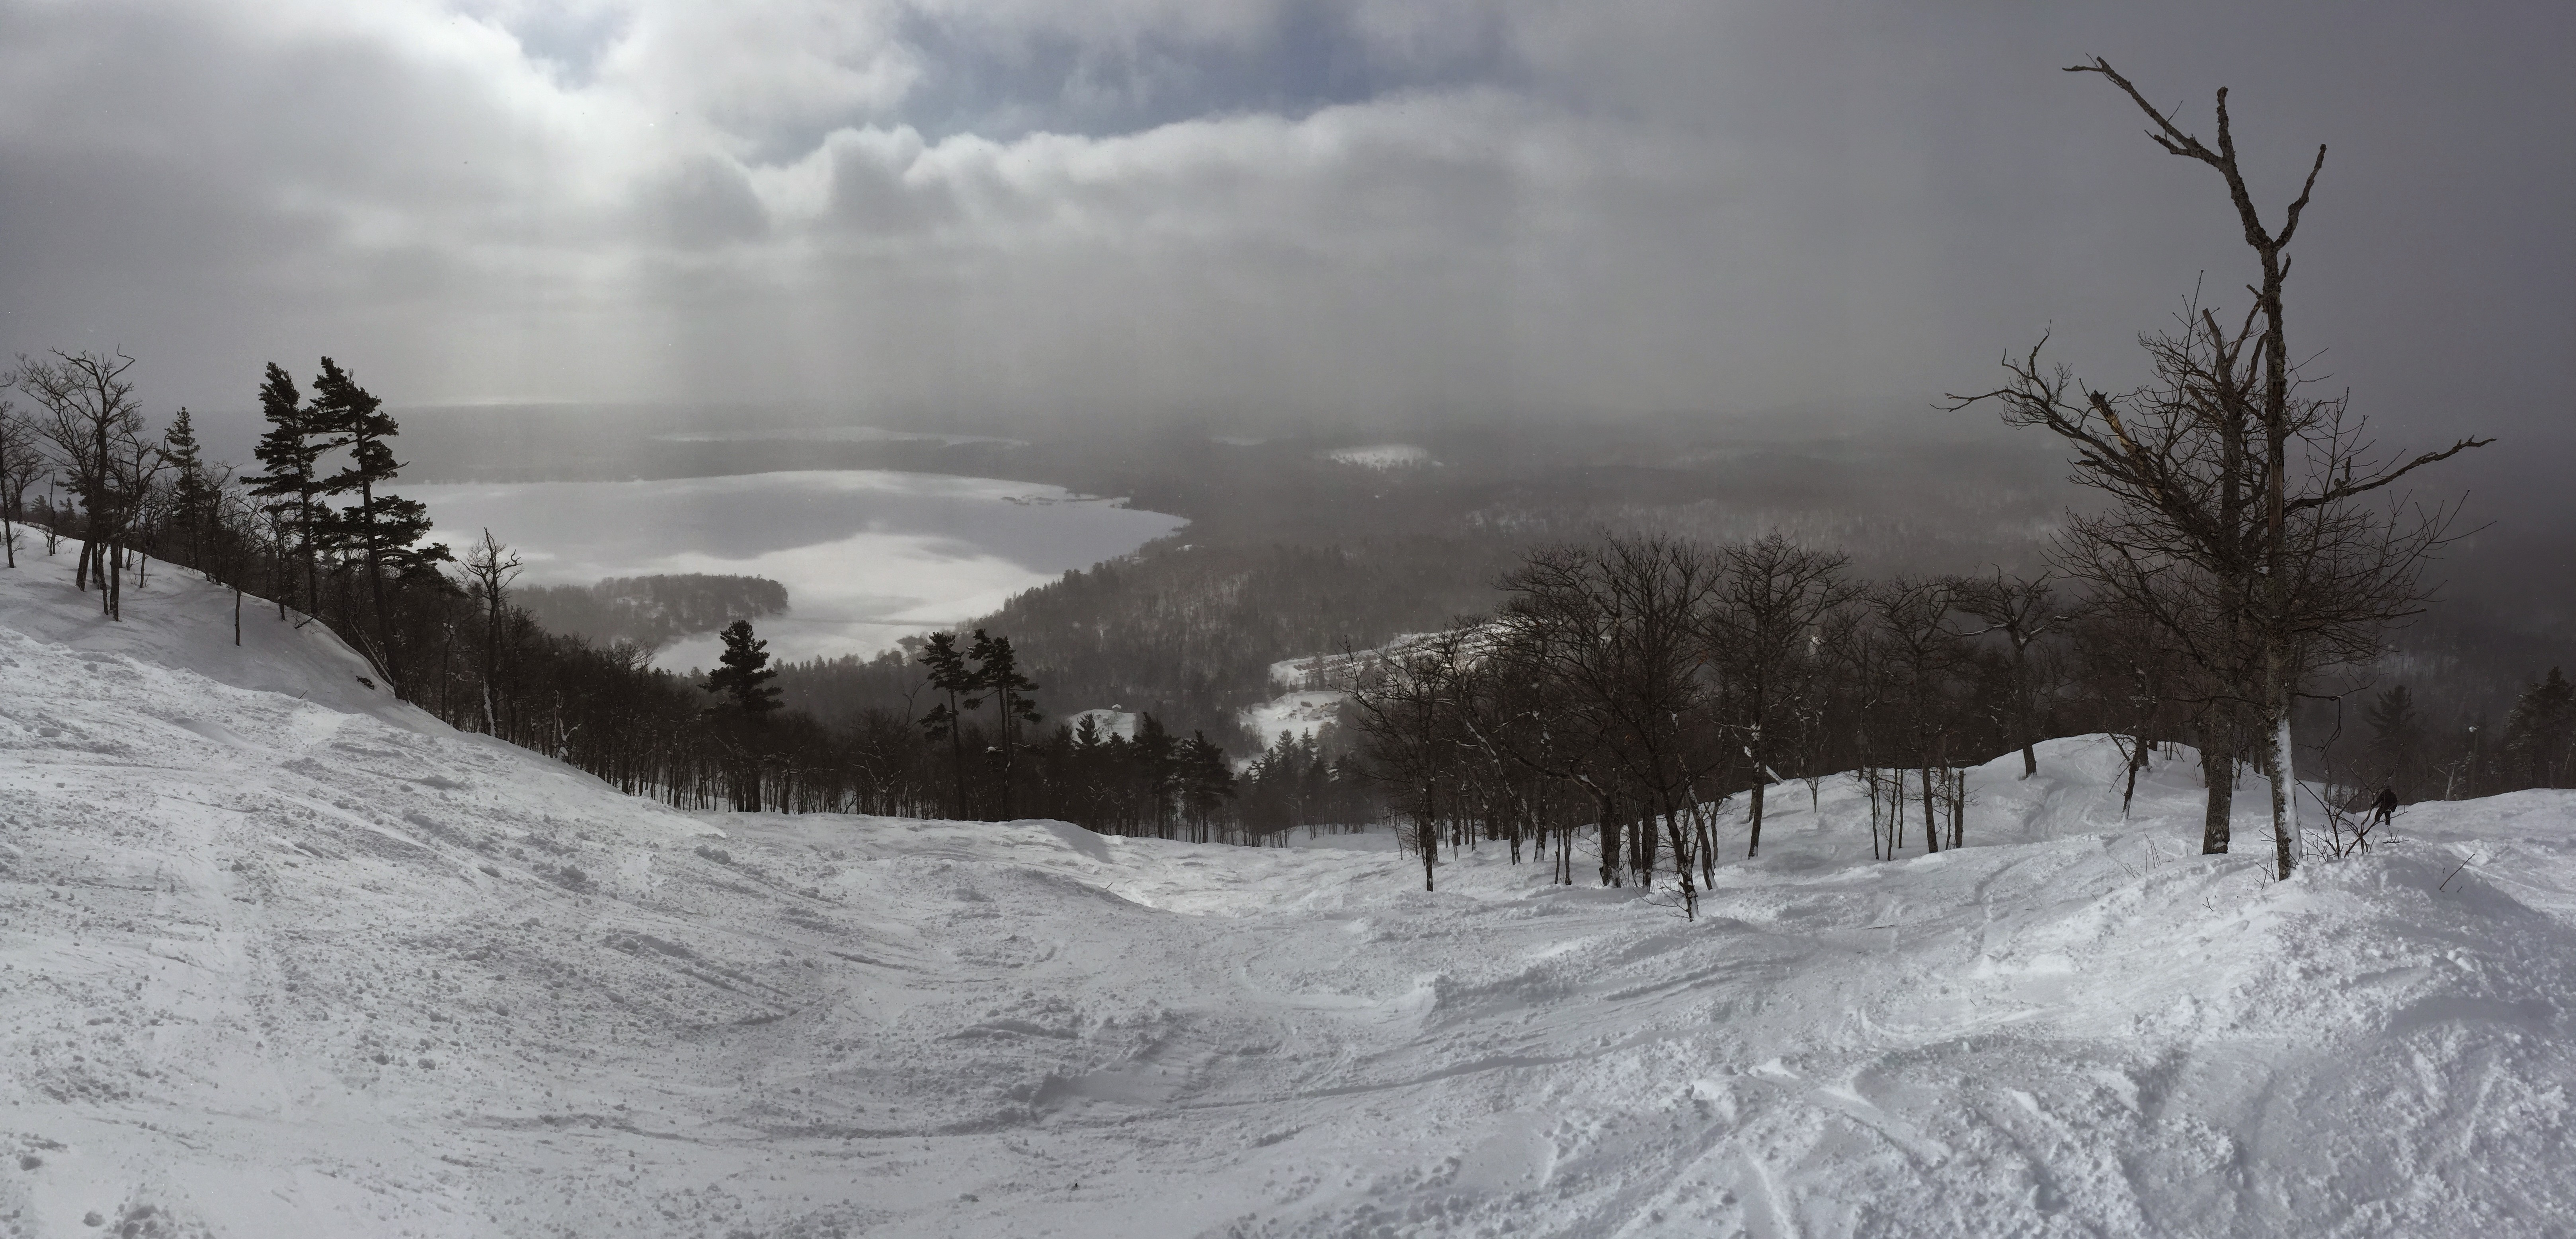 Panorama from near the top of Mt. Bohemia